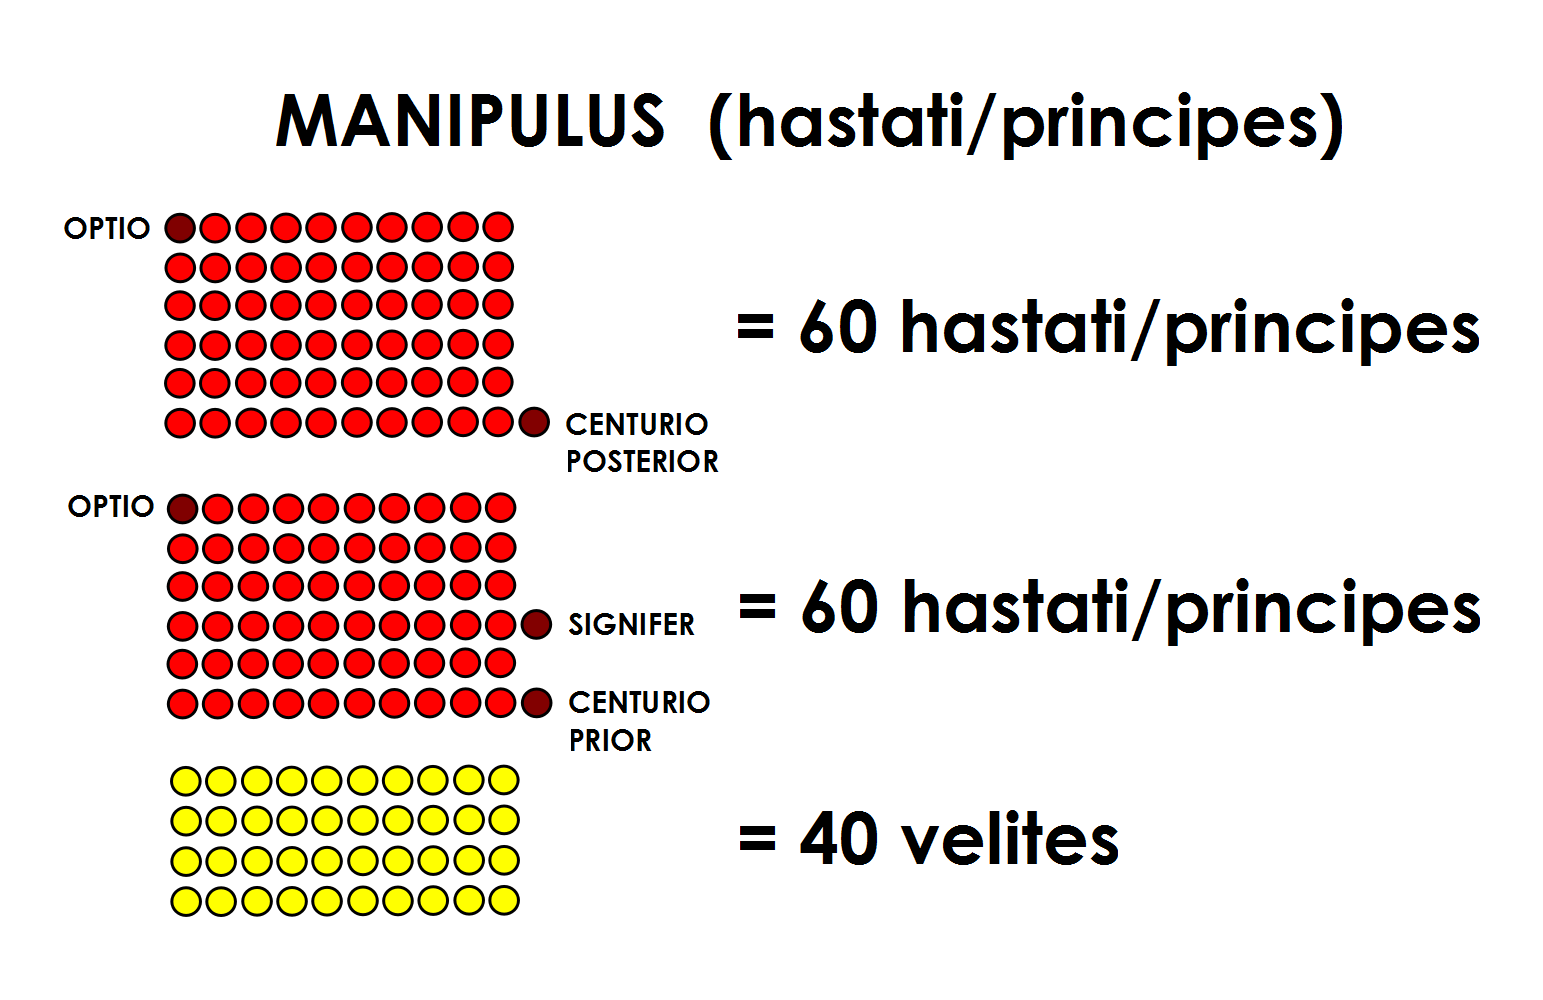 Hastati and Principes, Velites